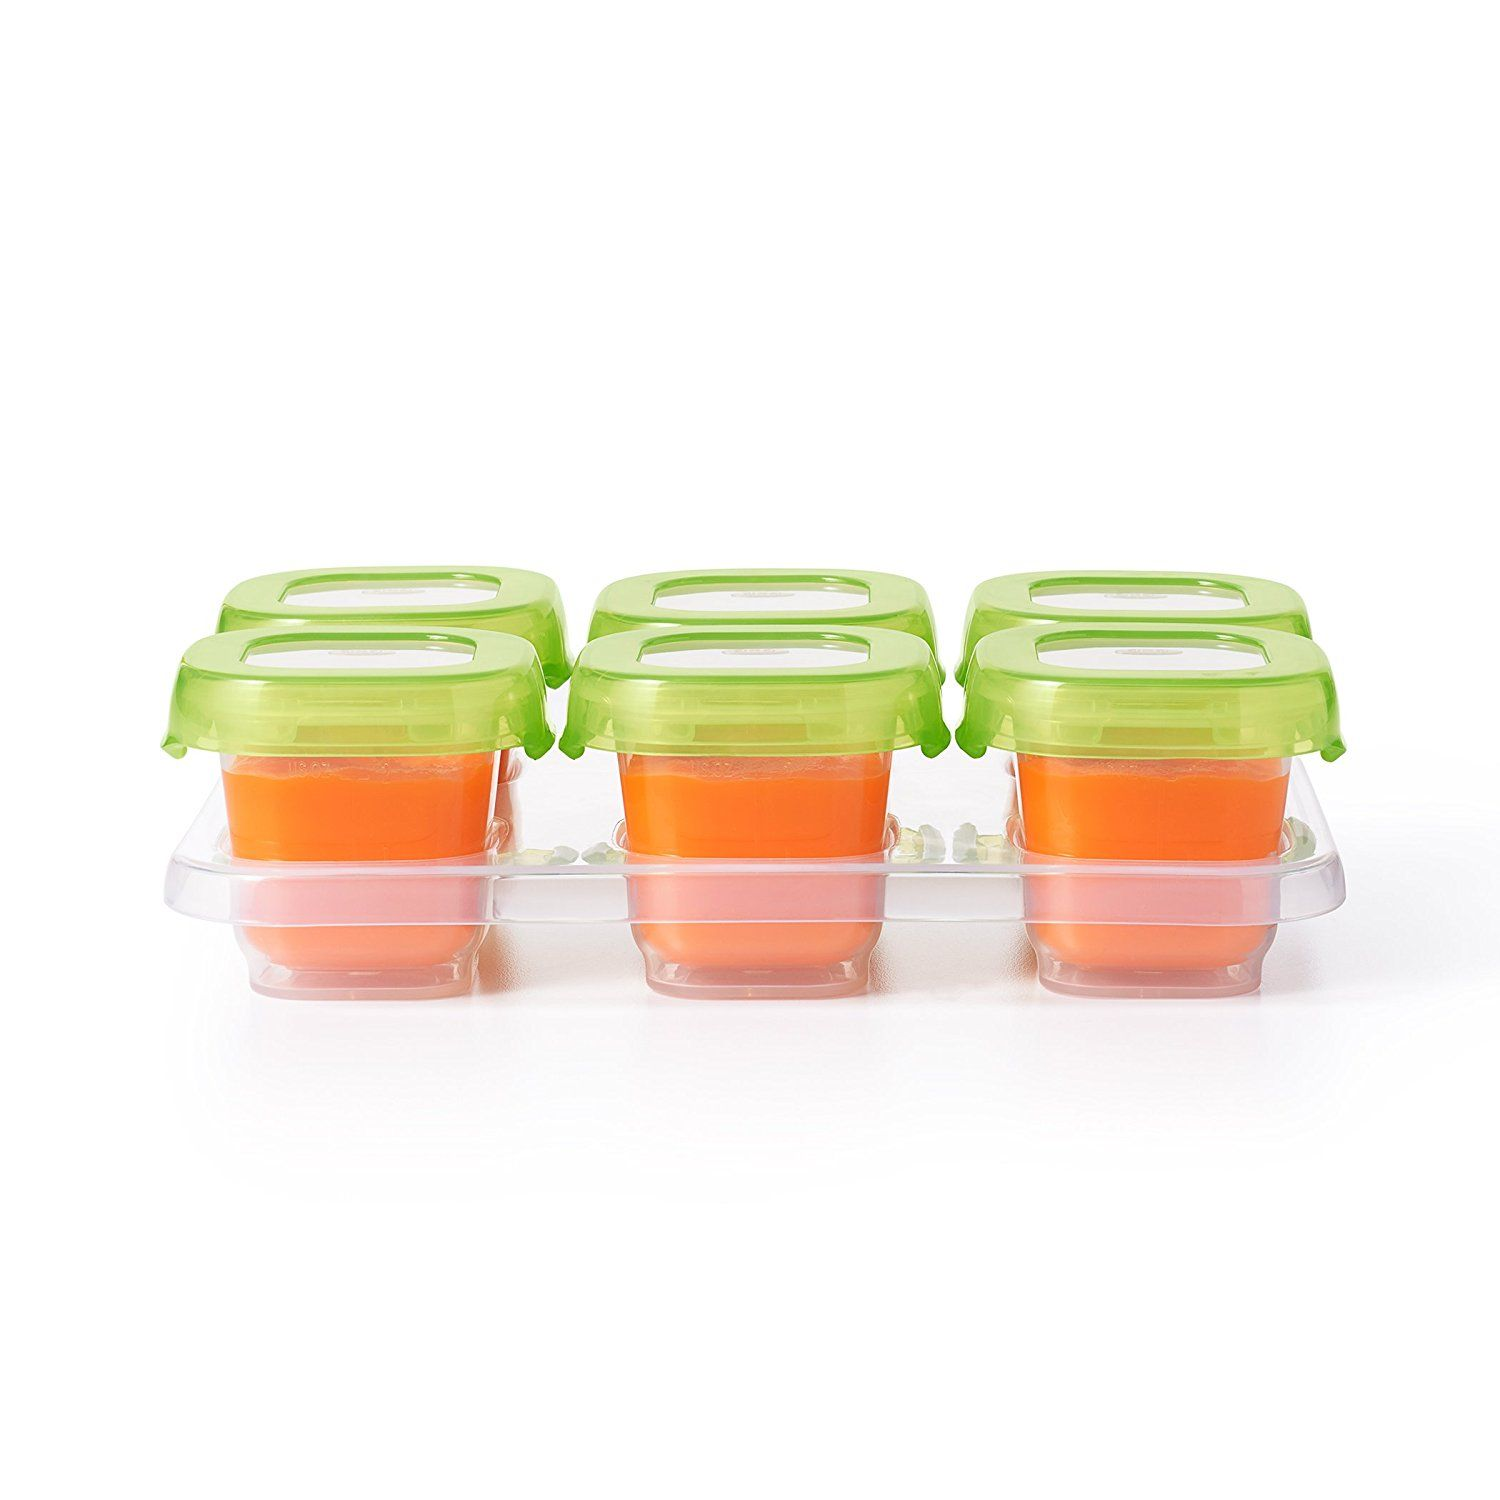 Baby Food Storage Ideas Oxo Tot Blocks Freezer Containers Affiliate